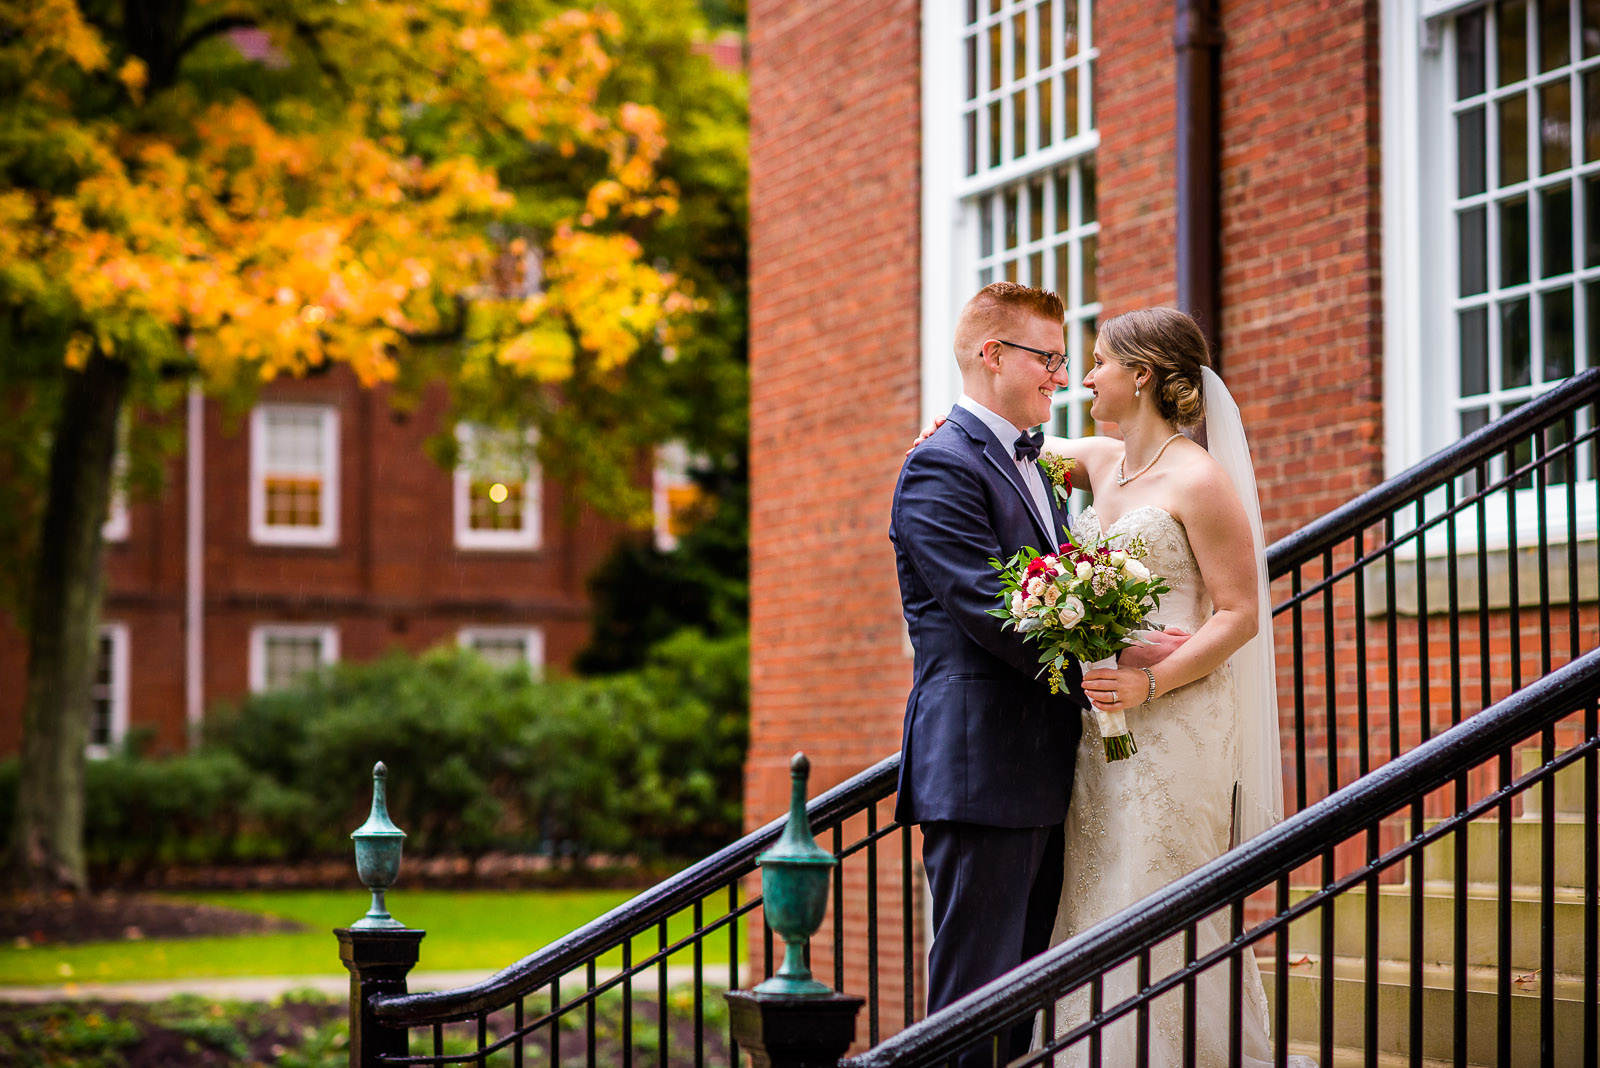 Eric_and_Christy_Photography_Blog_Wedding_Erica_Mike-55